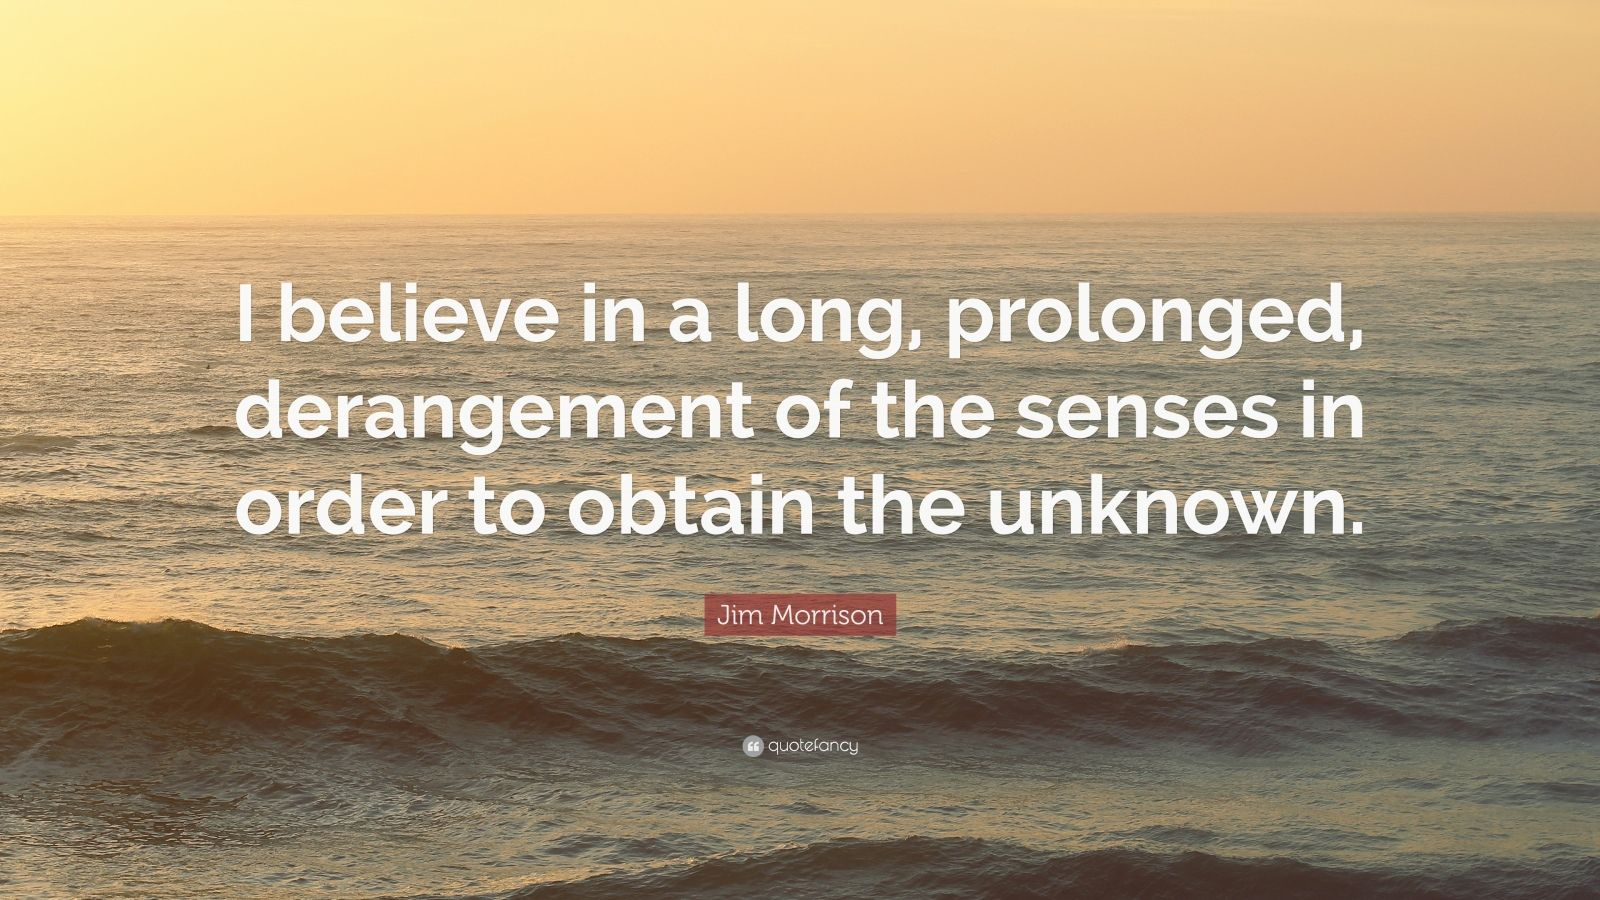 """Jim Morrison Quote: """"I believe in a long, prolonged, derangement of the senses in order to obtain the unknown."""""""